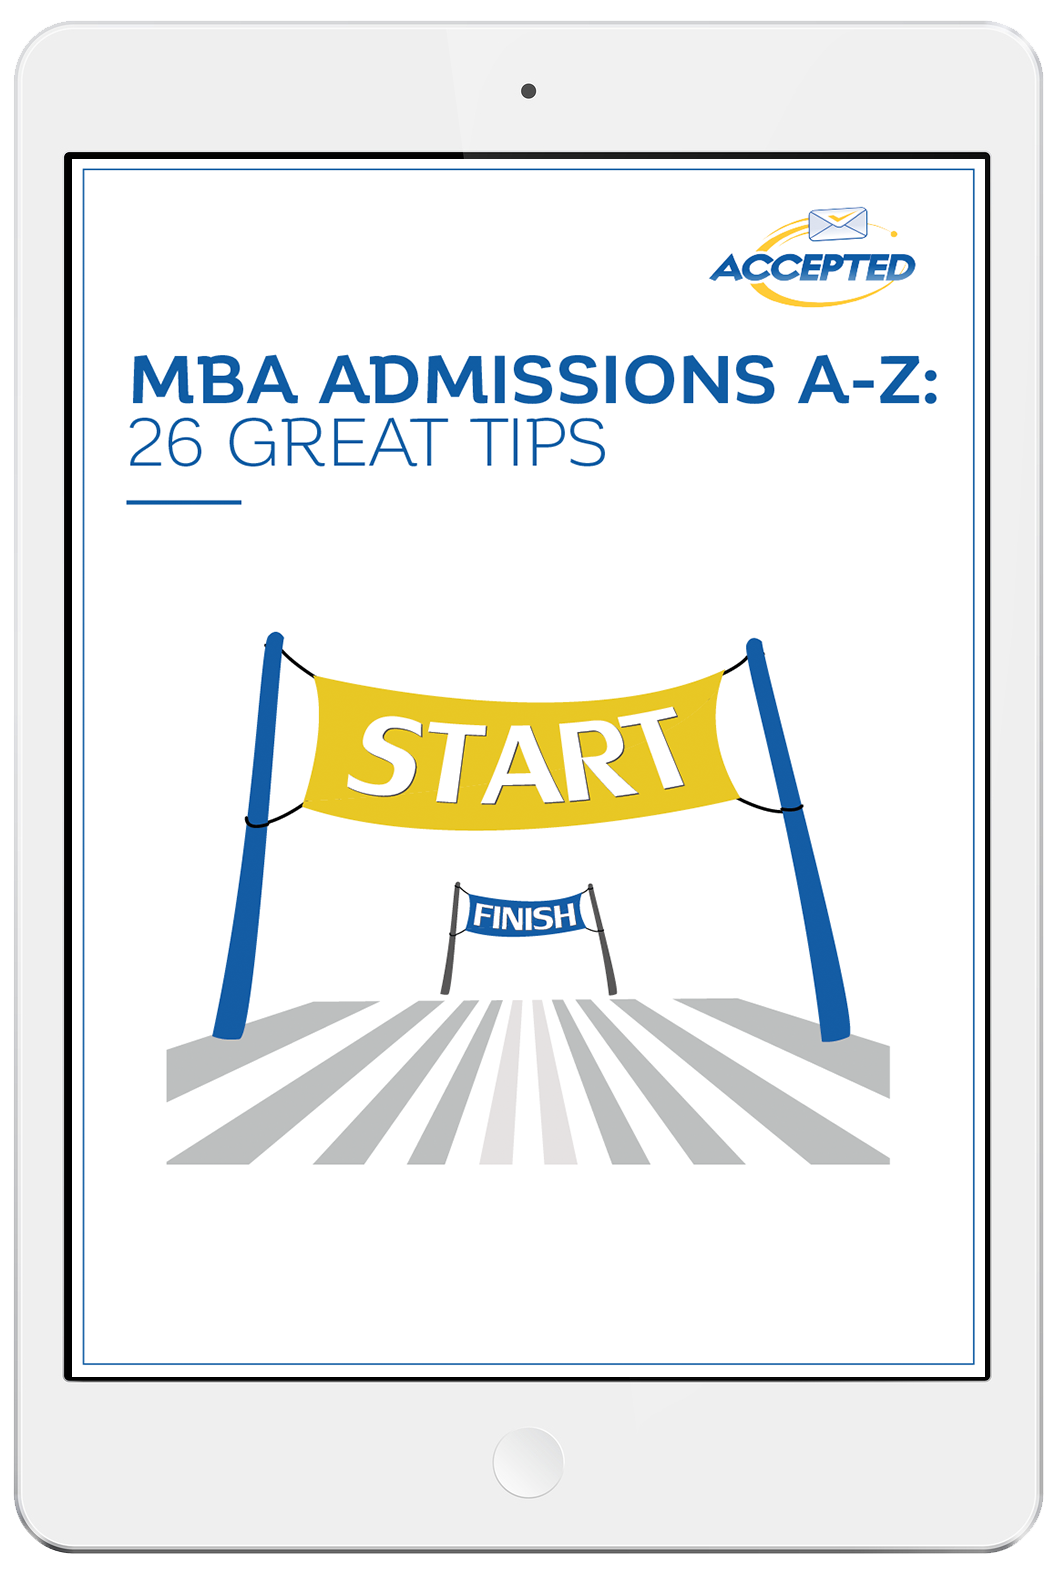 MBA_Admissions_A-Z_26_Great_Tips.png